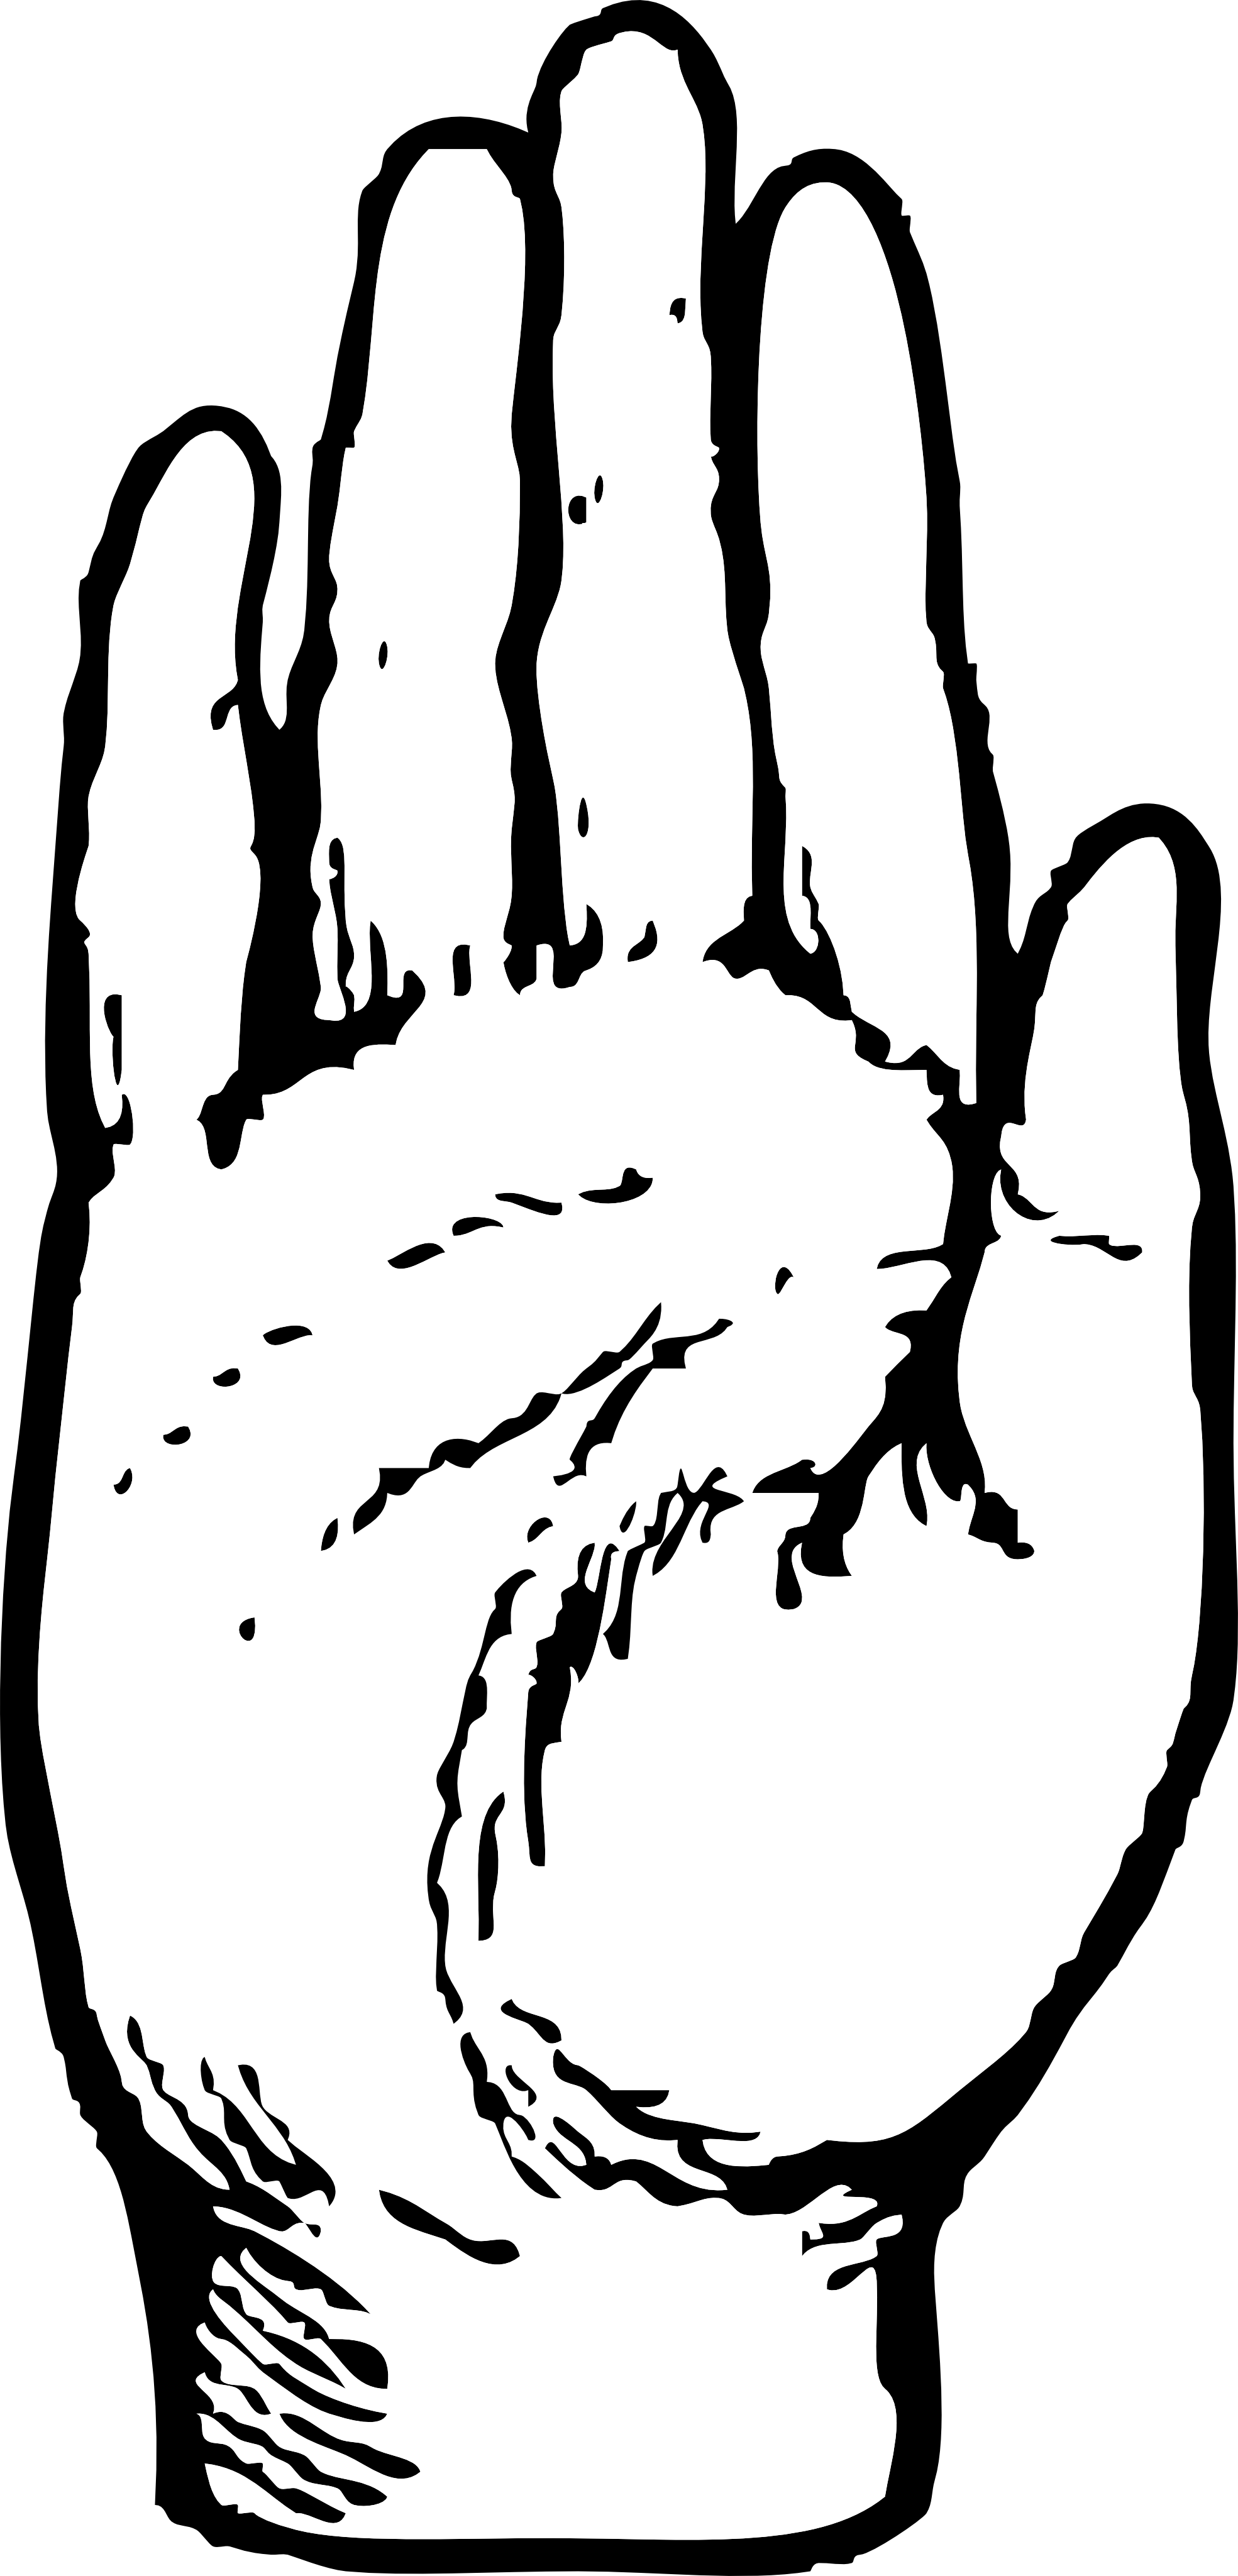 Free Hand Back Cliparts, Download Free Clip Art, Free Clip.